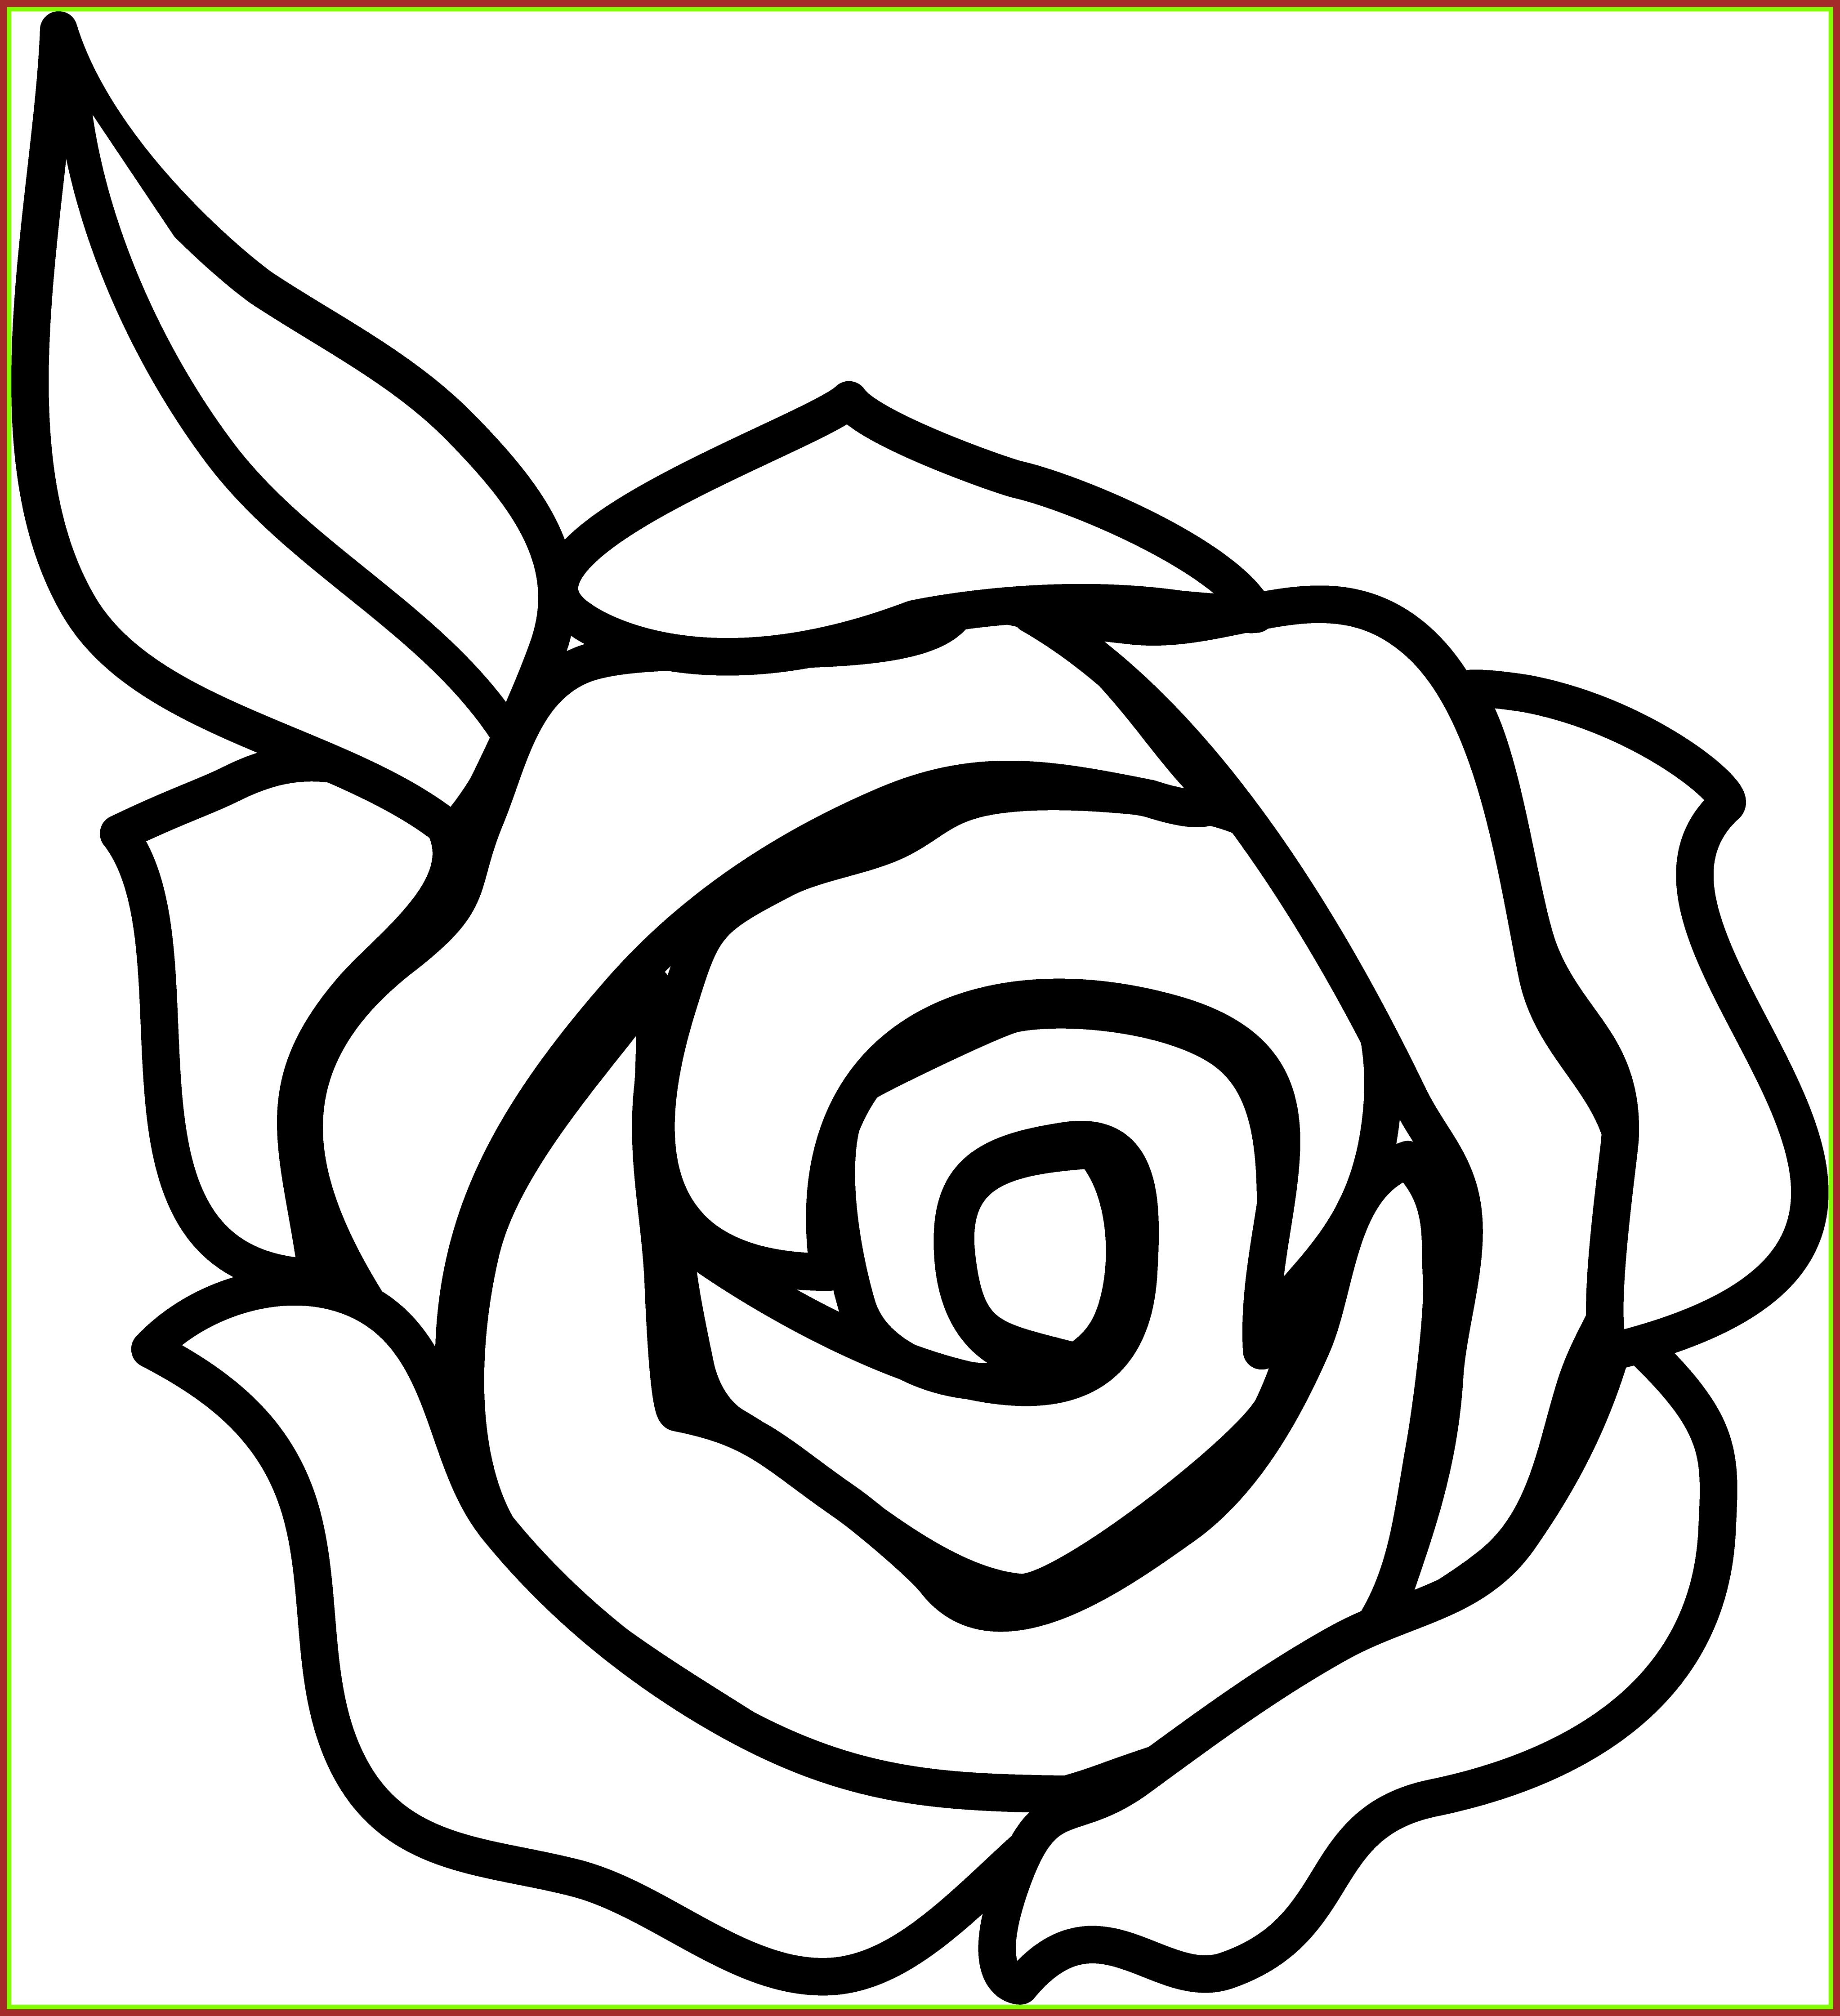 Incredible Great Clipart Rose Flower Black And Picture For Concept ... png download